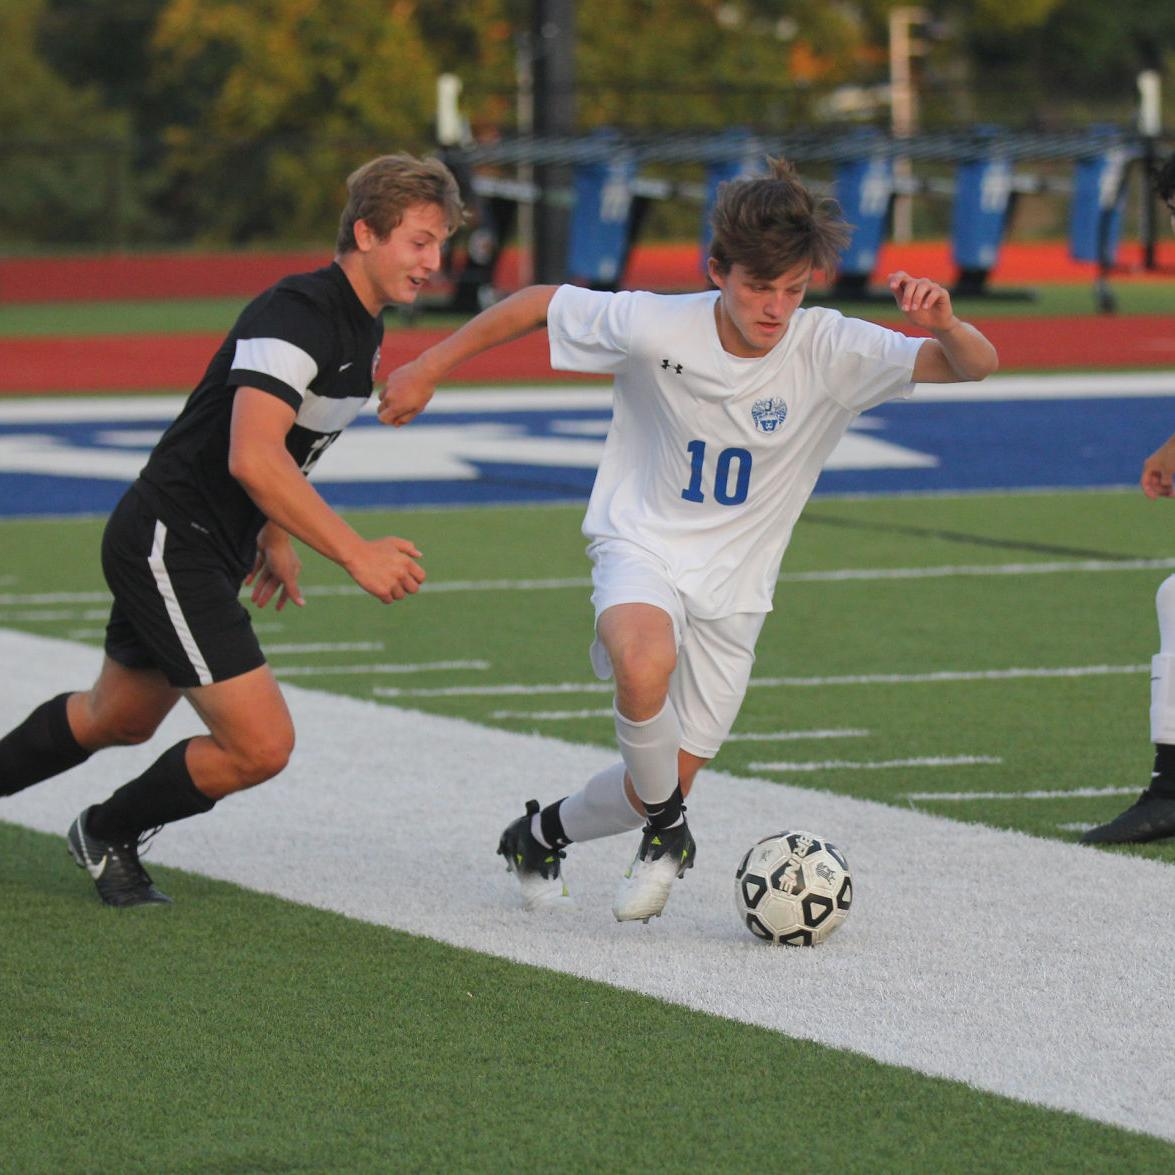 Boys Soccer — Washington vs. Ft. Zumwalt South